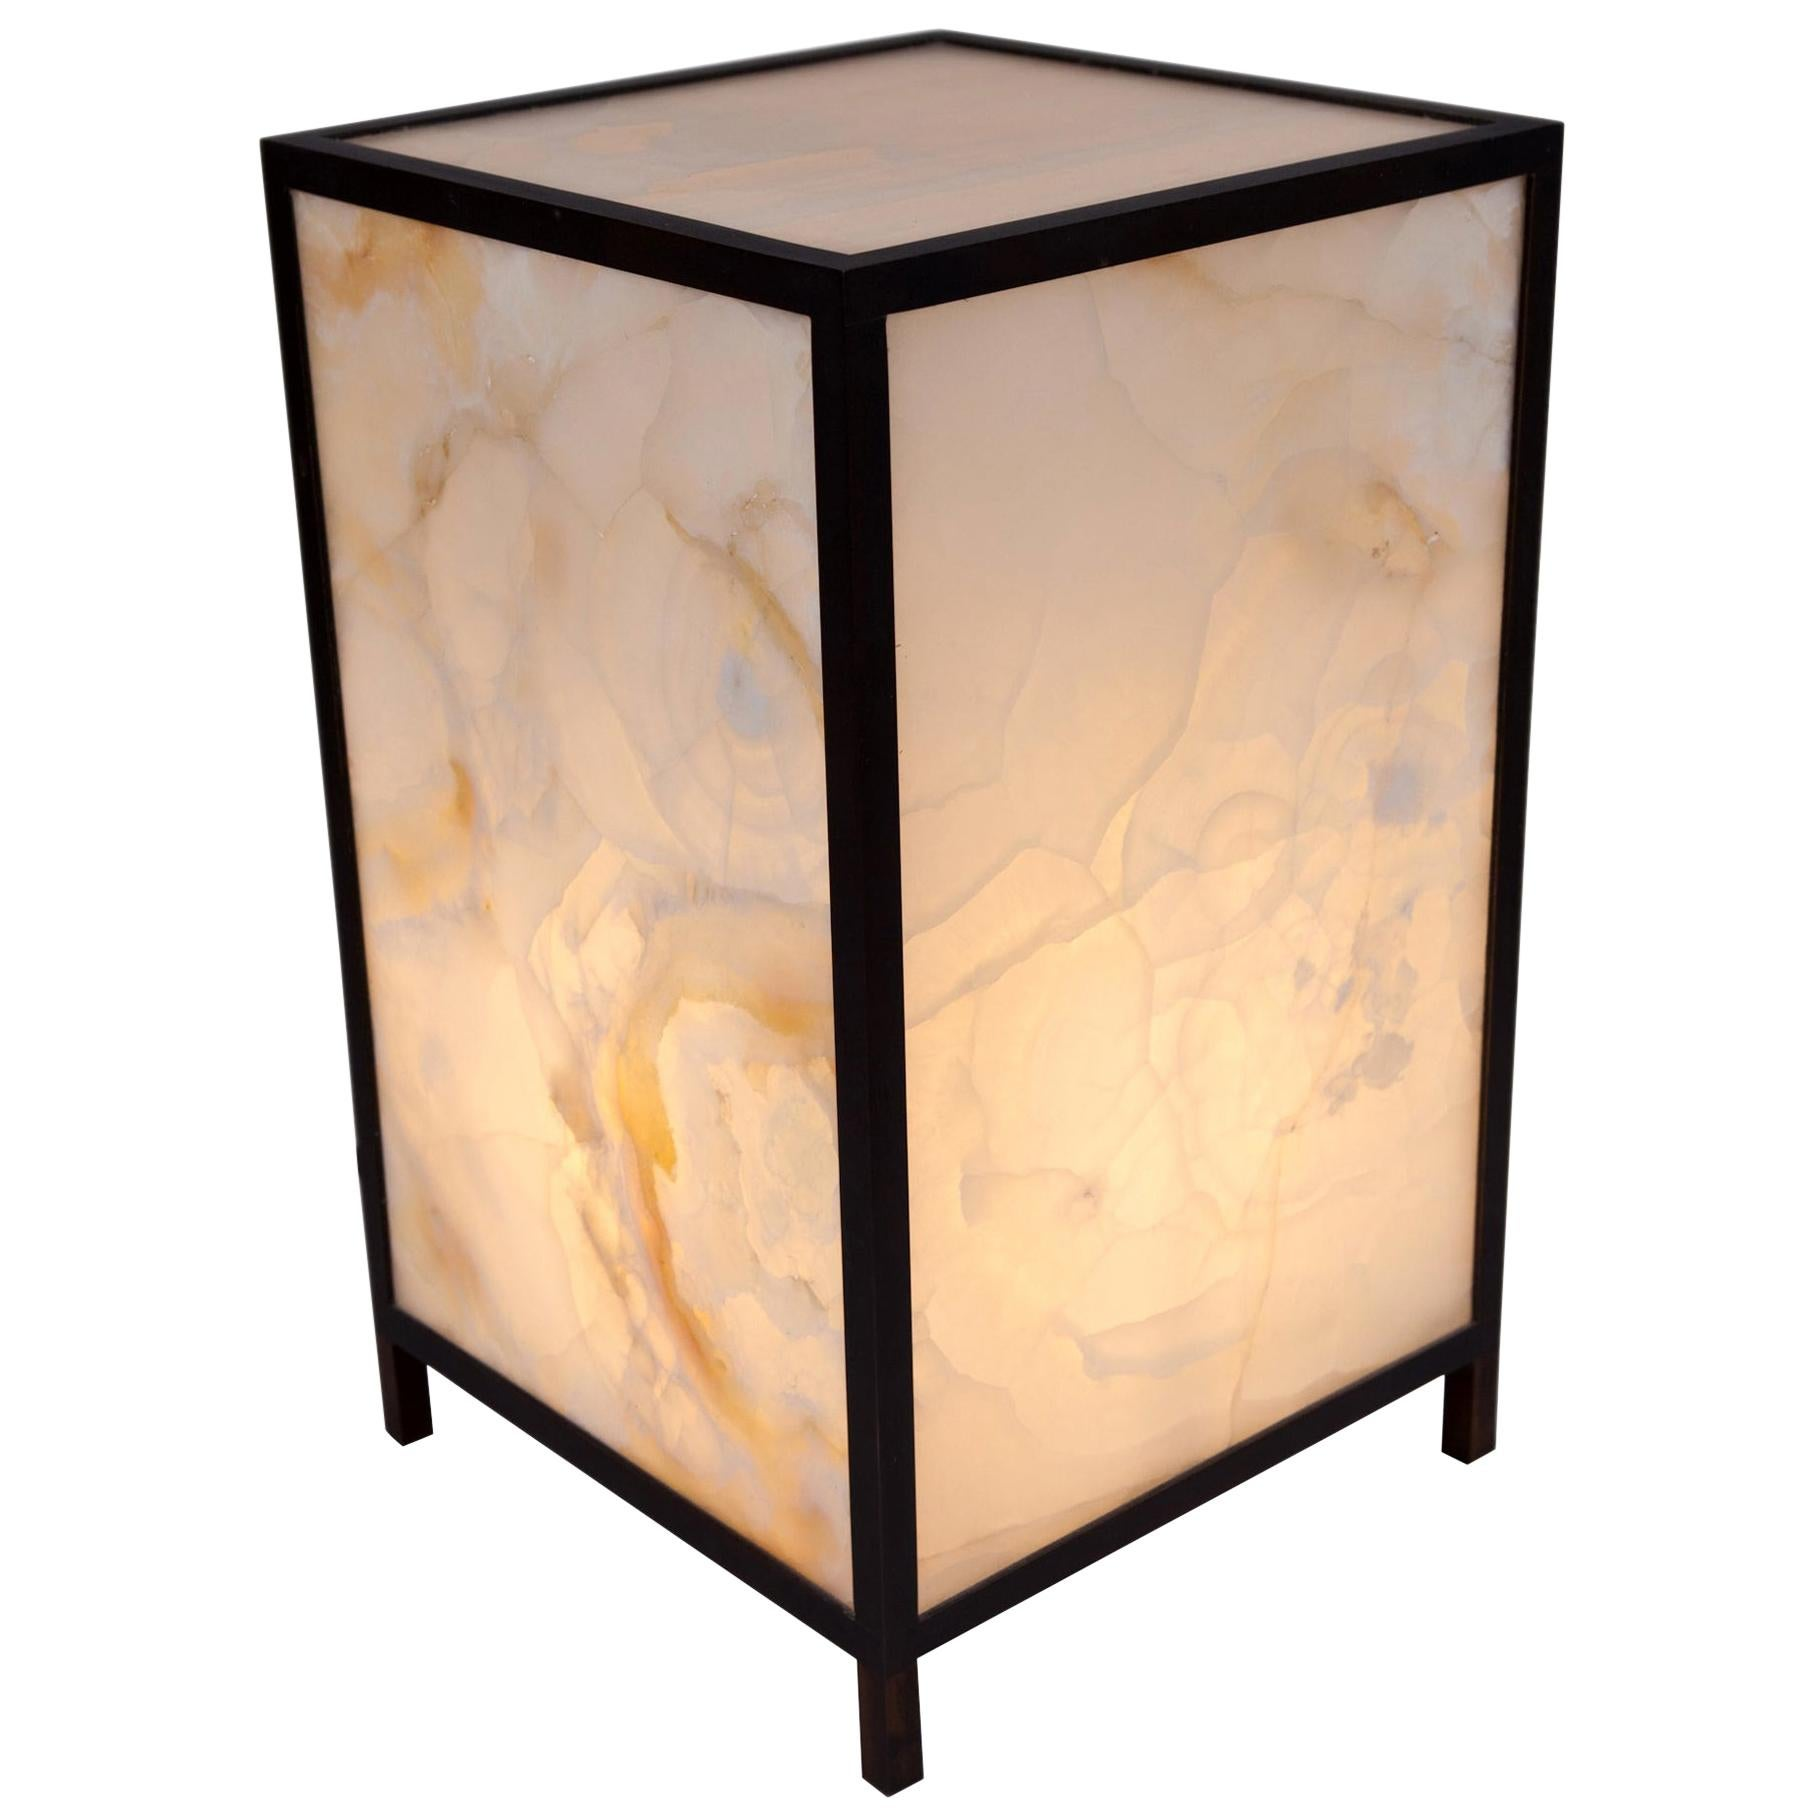 Onyx Table Lamp by Atelier Boucquet